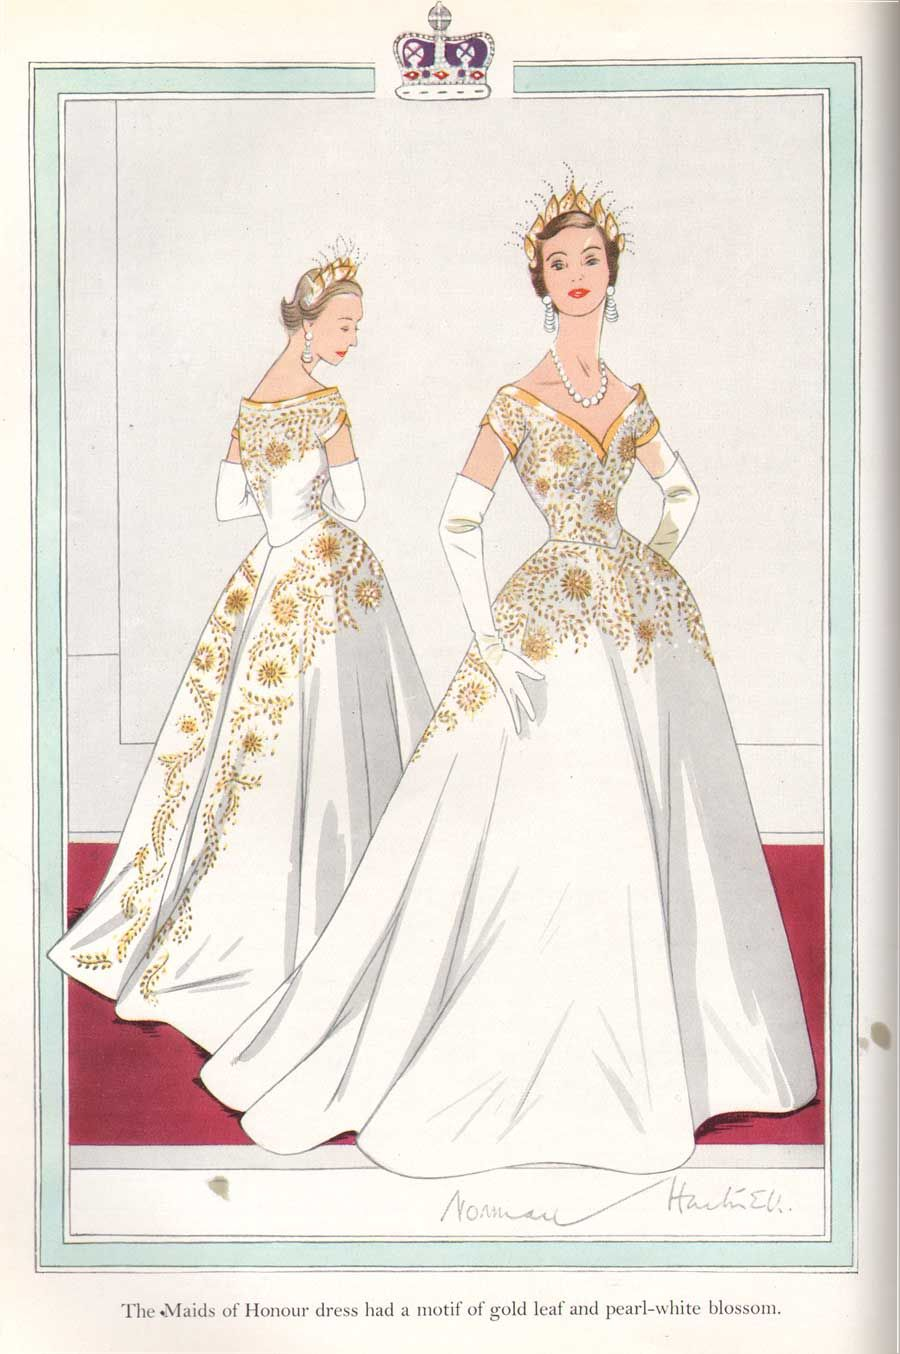 Norman-Hartnell-1953-Coronation-Dress-Maids-of-Honour.